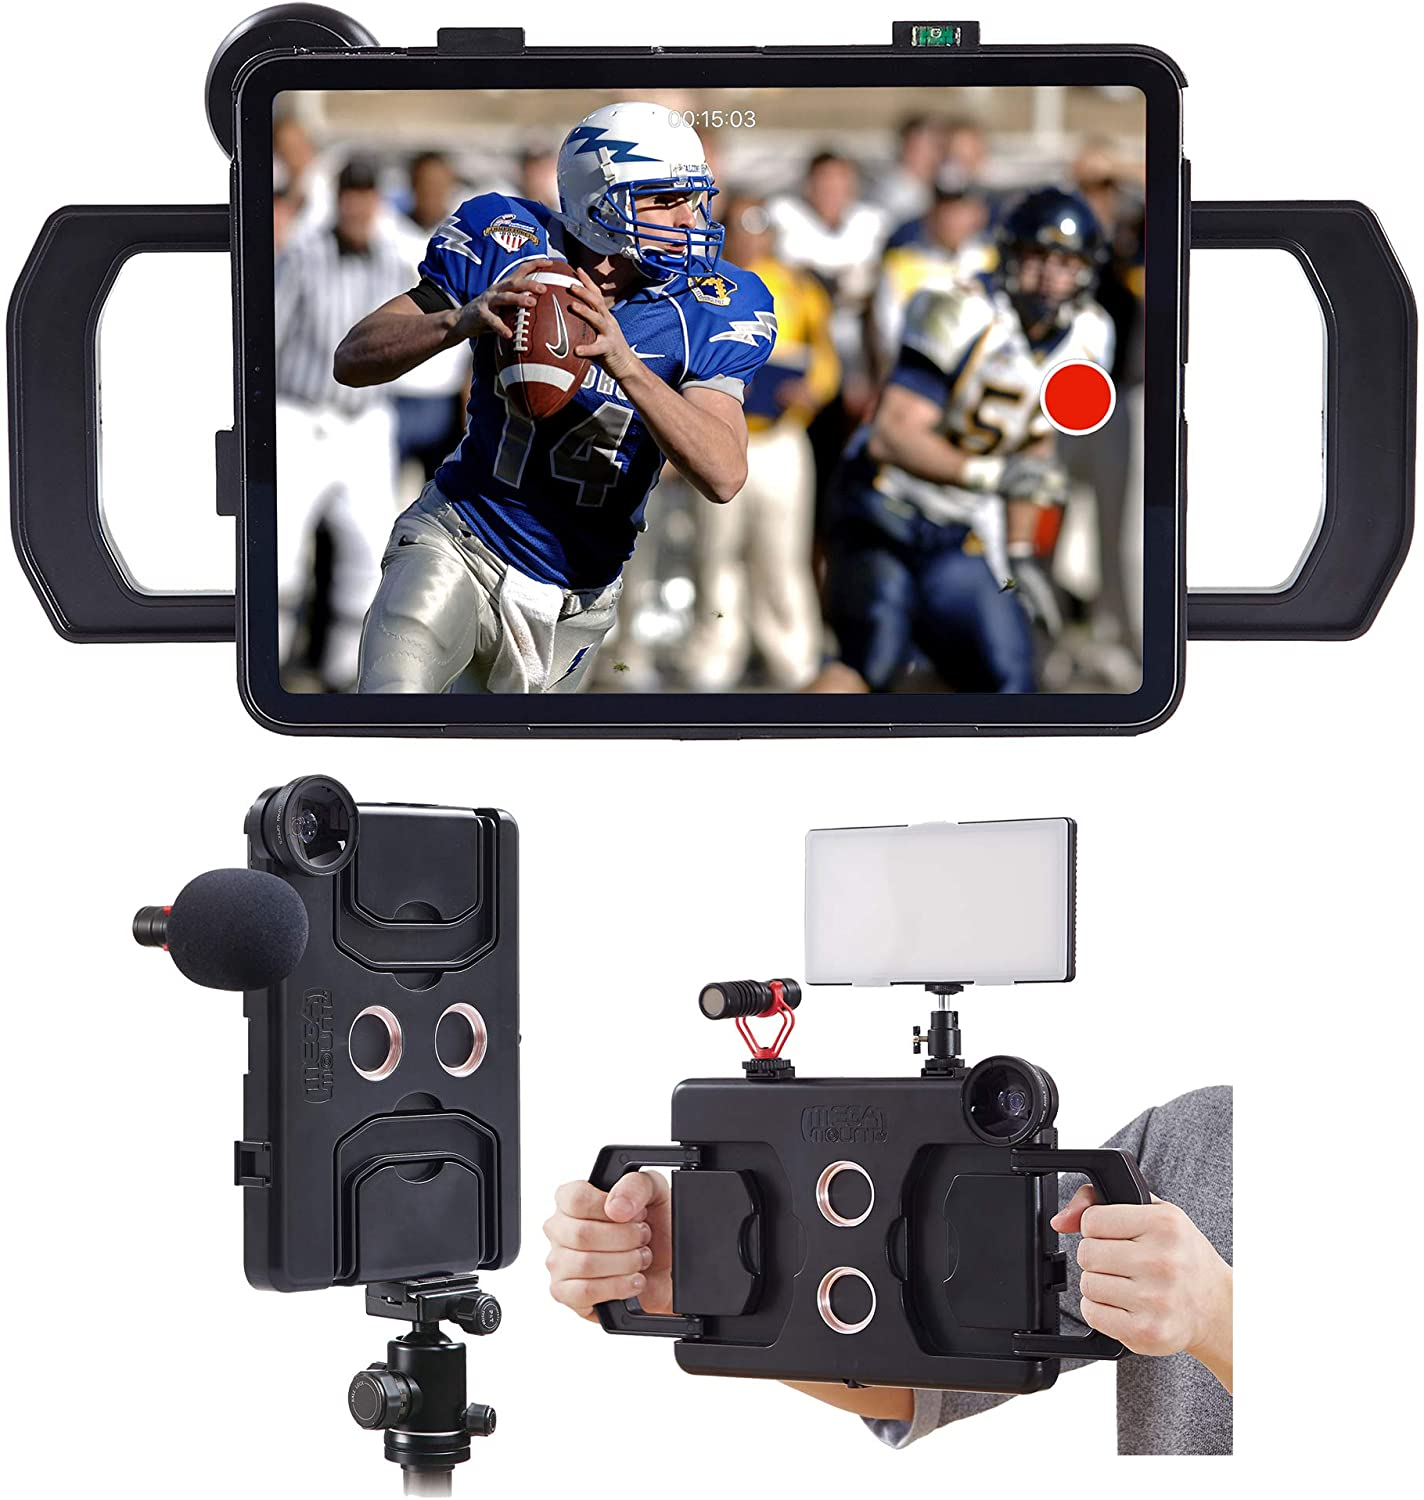 MegaMount Multimedia Rig Case Video Stabilizer for Apple iPad Air 10.5 inch [3rd Gen 2019 Only] Attach Lenses, Lights, Microphones. Great for Live Conferencing, Video Recording, Mounts on Tripods